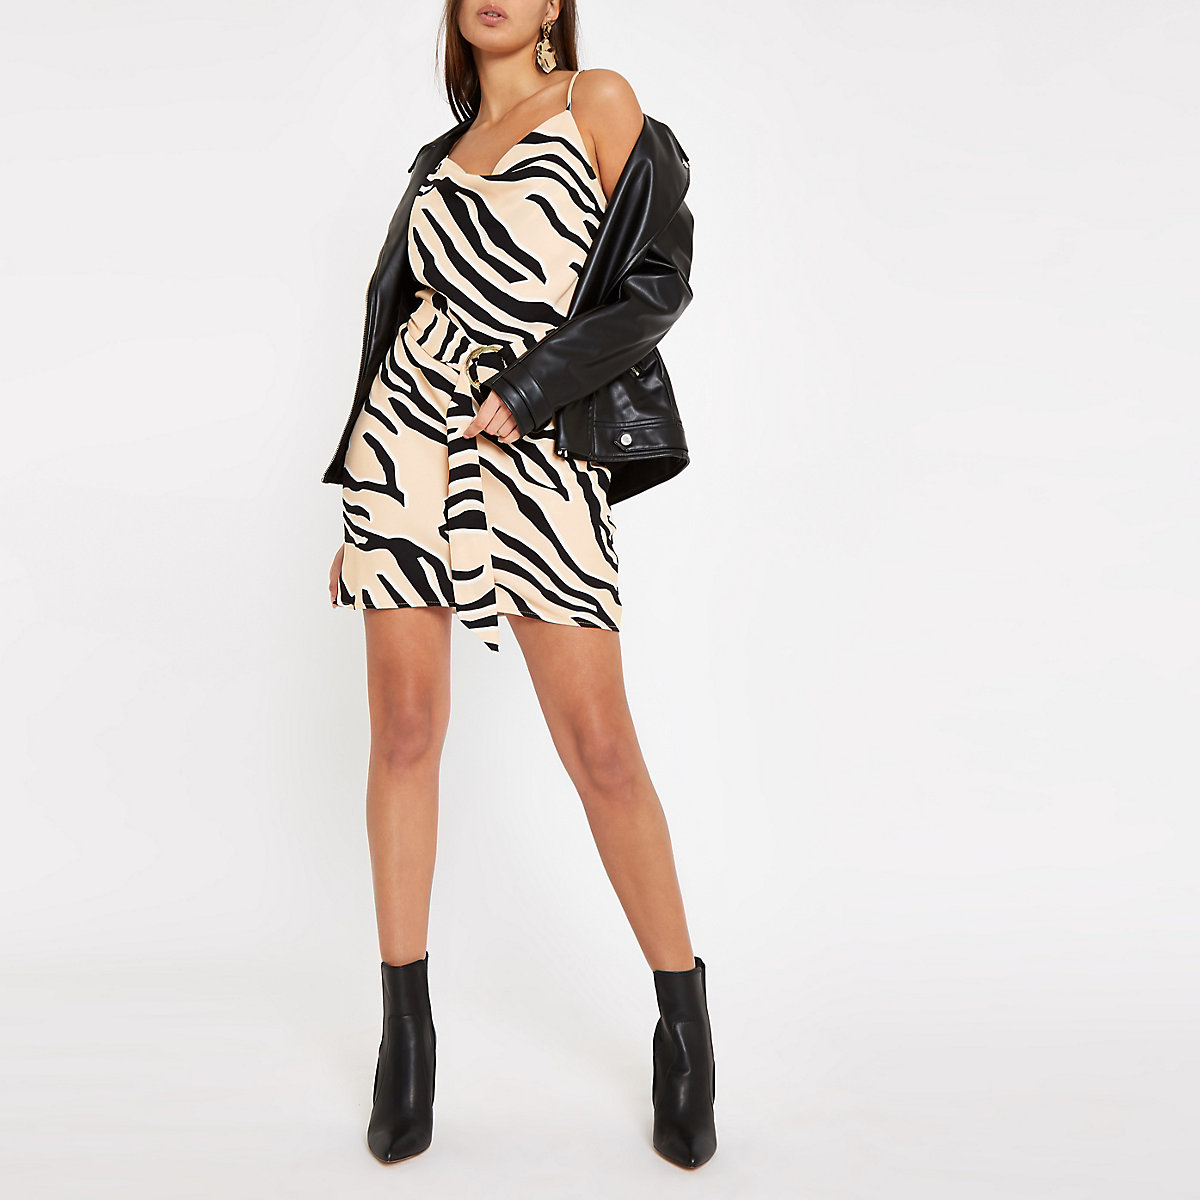 Brown zebra print slip dress